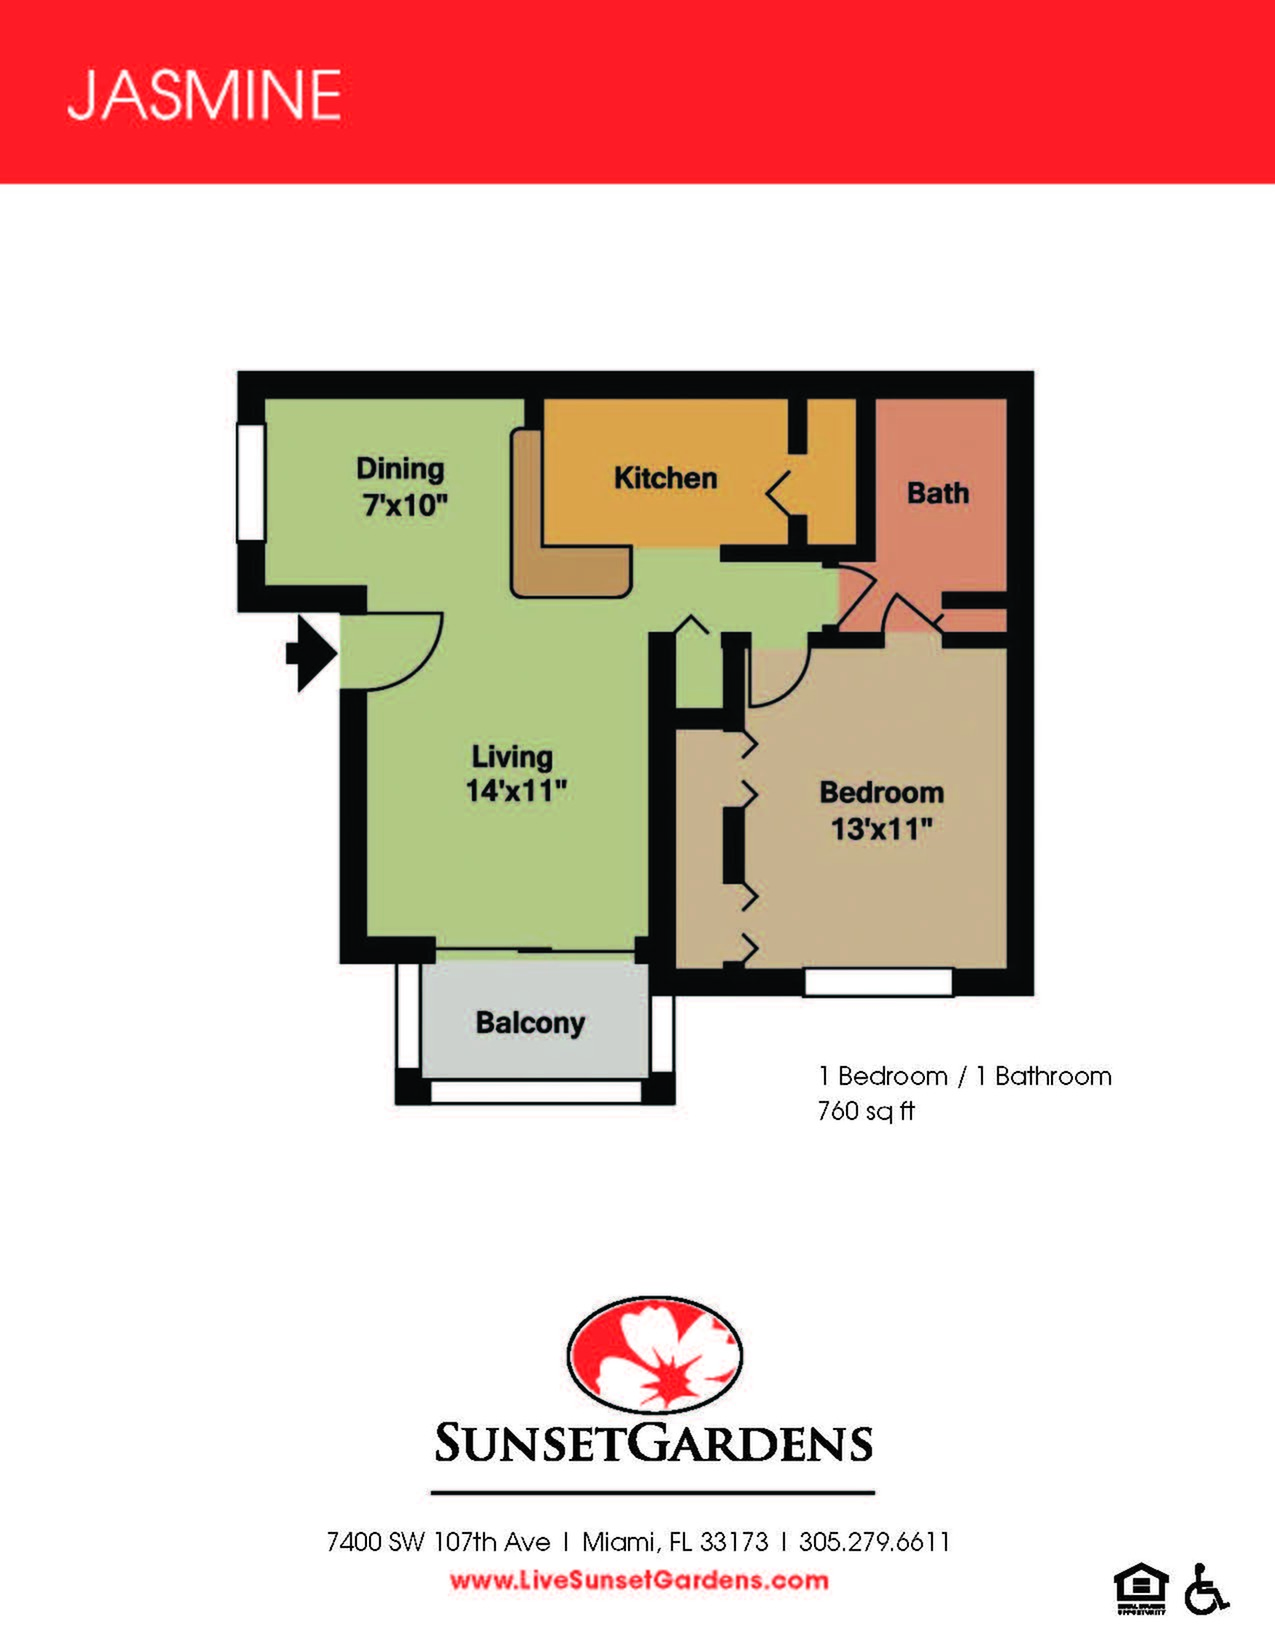 Jasmine one bedroom one bathroom floor plan